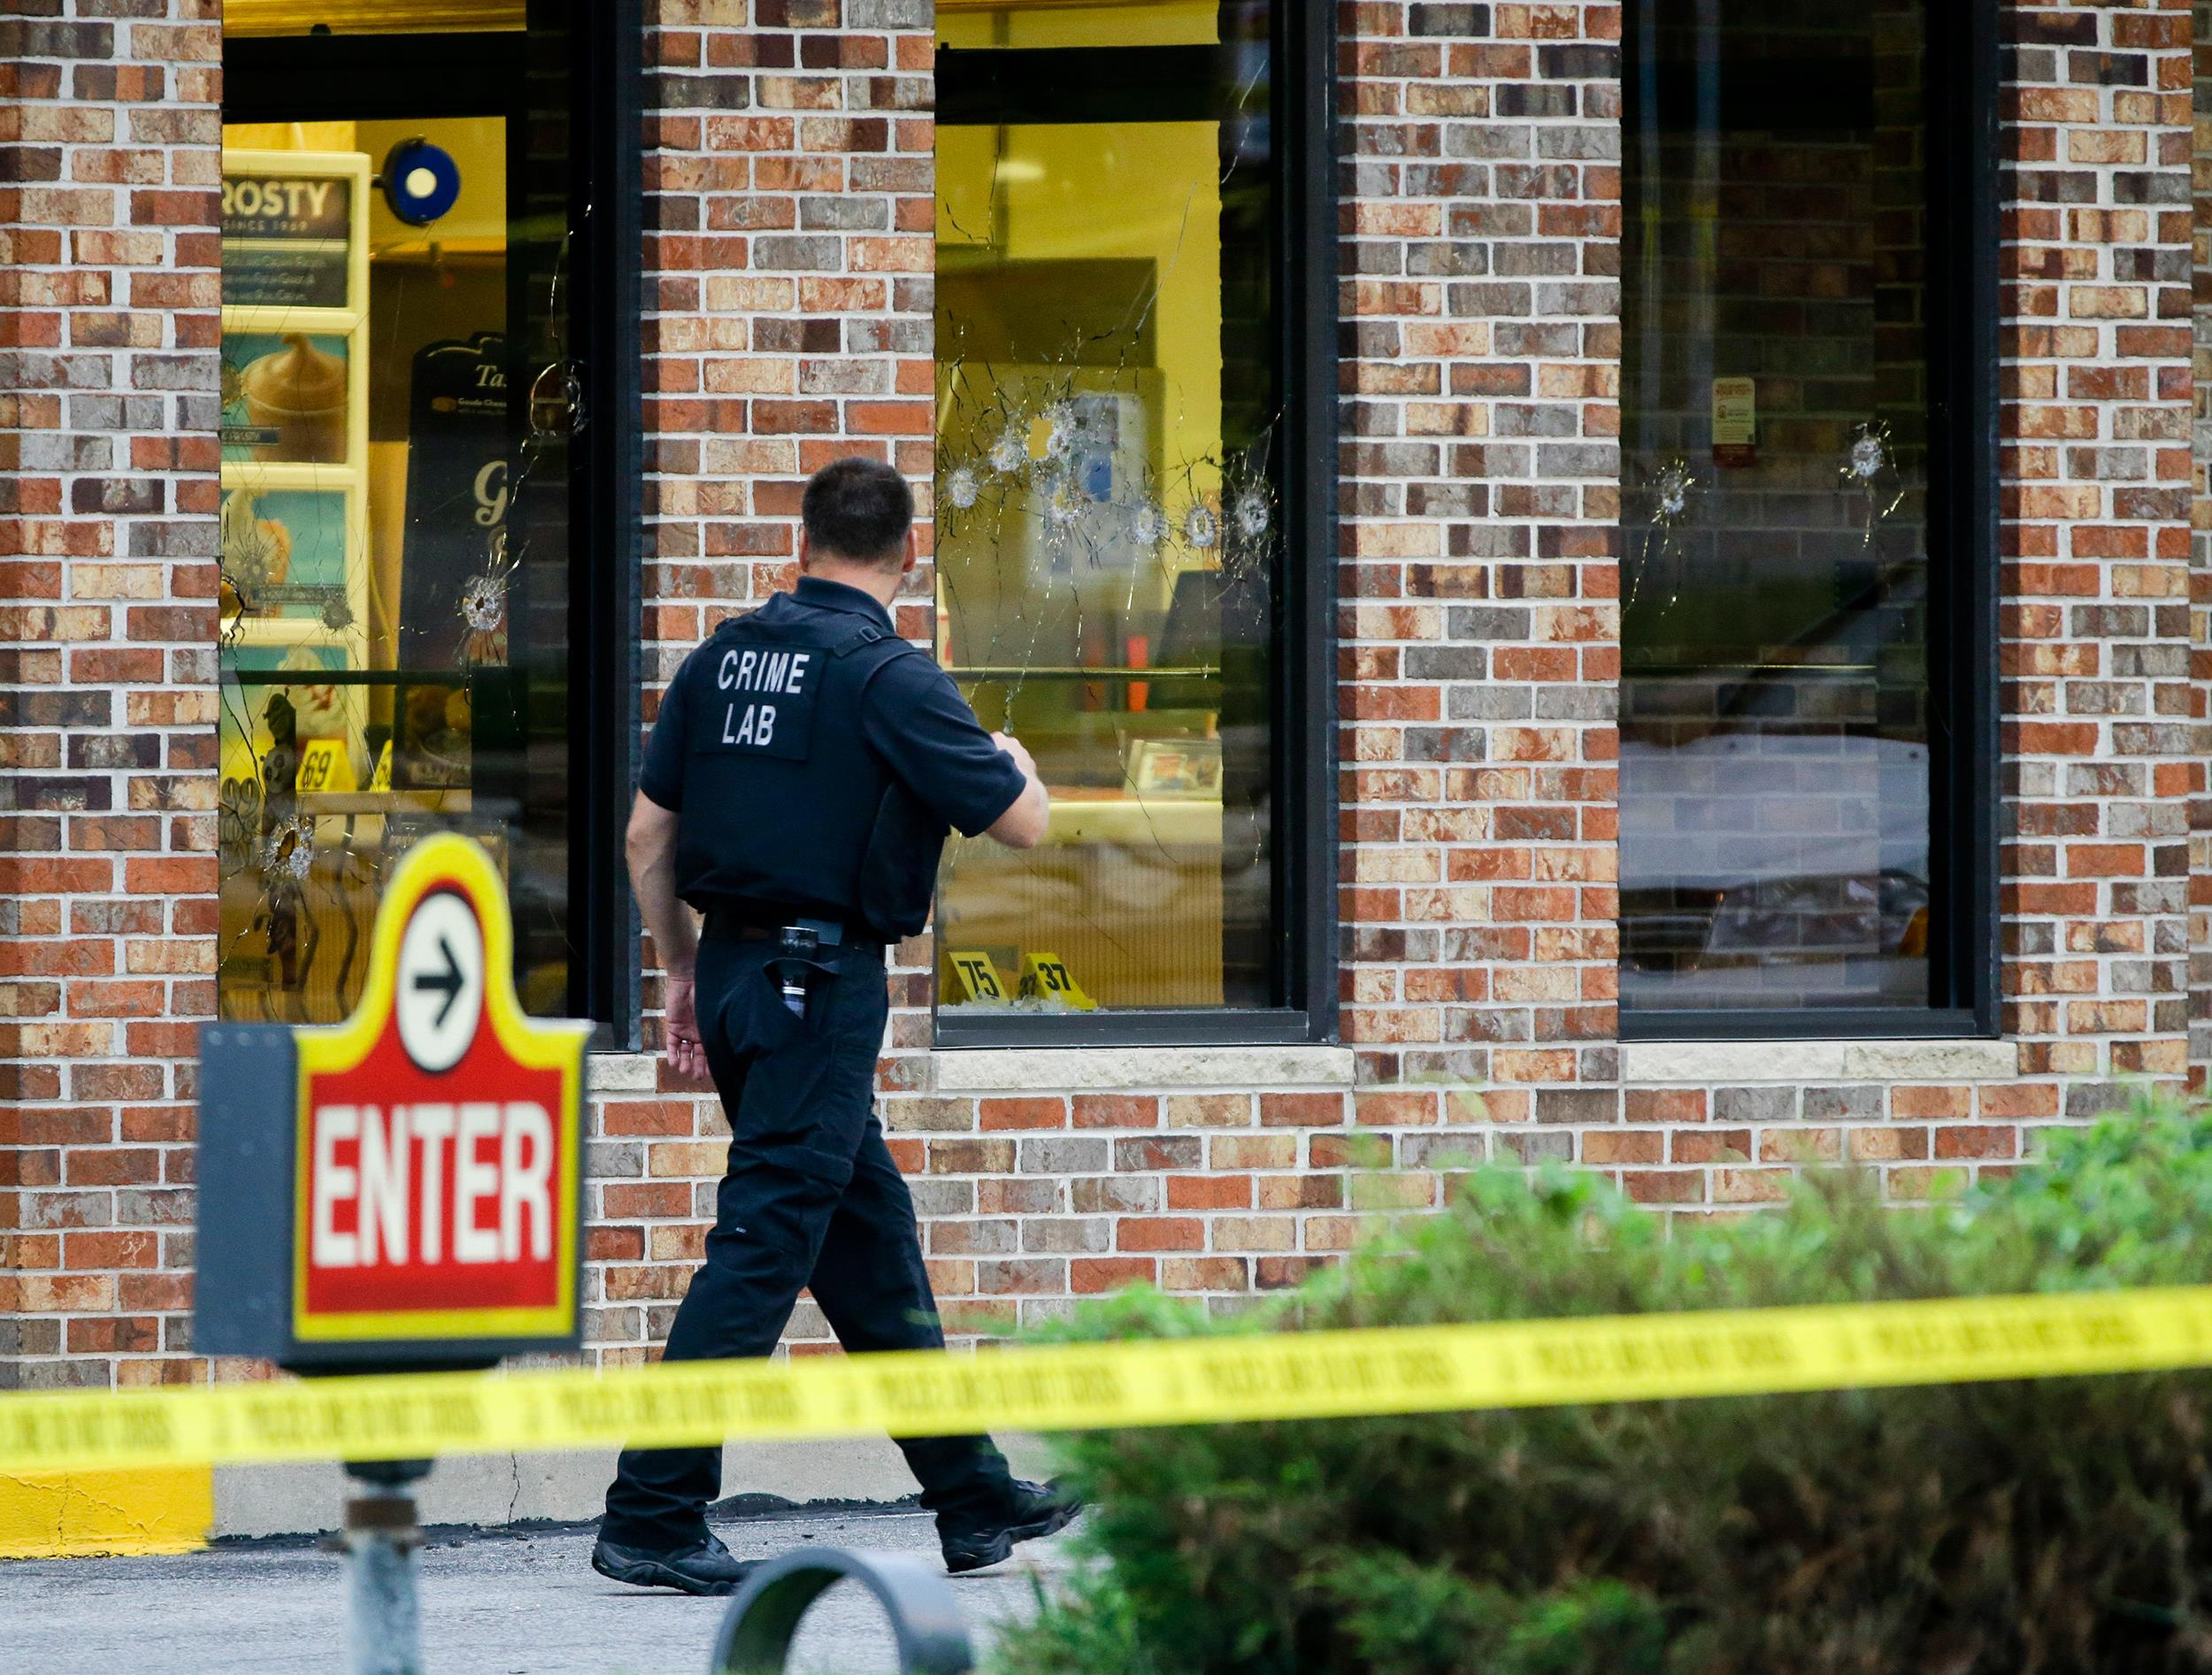 Image: A crime lab technician walks past bullet riddled windows at a Wendy's in Omaha, Neb.